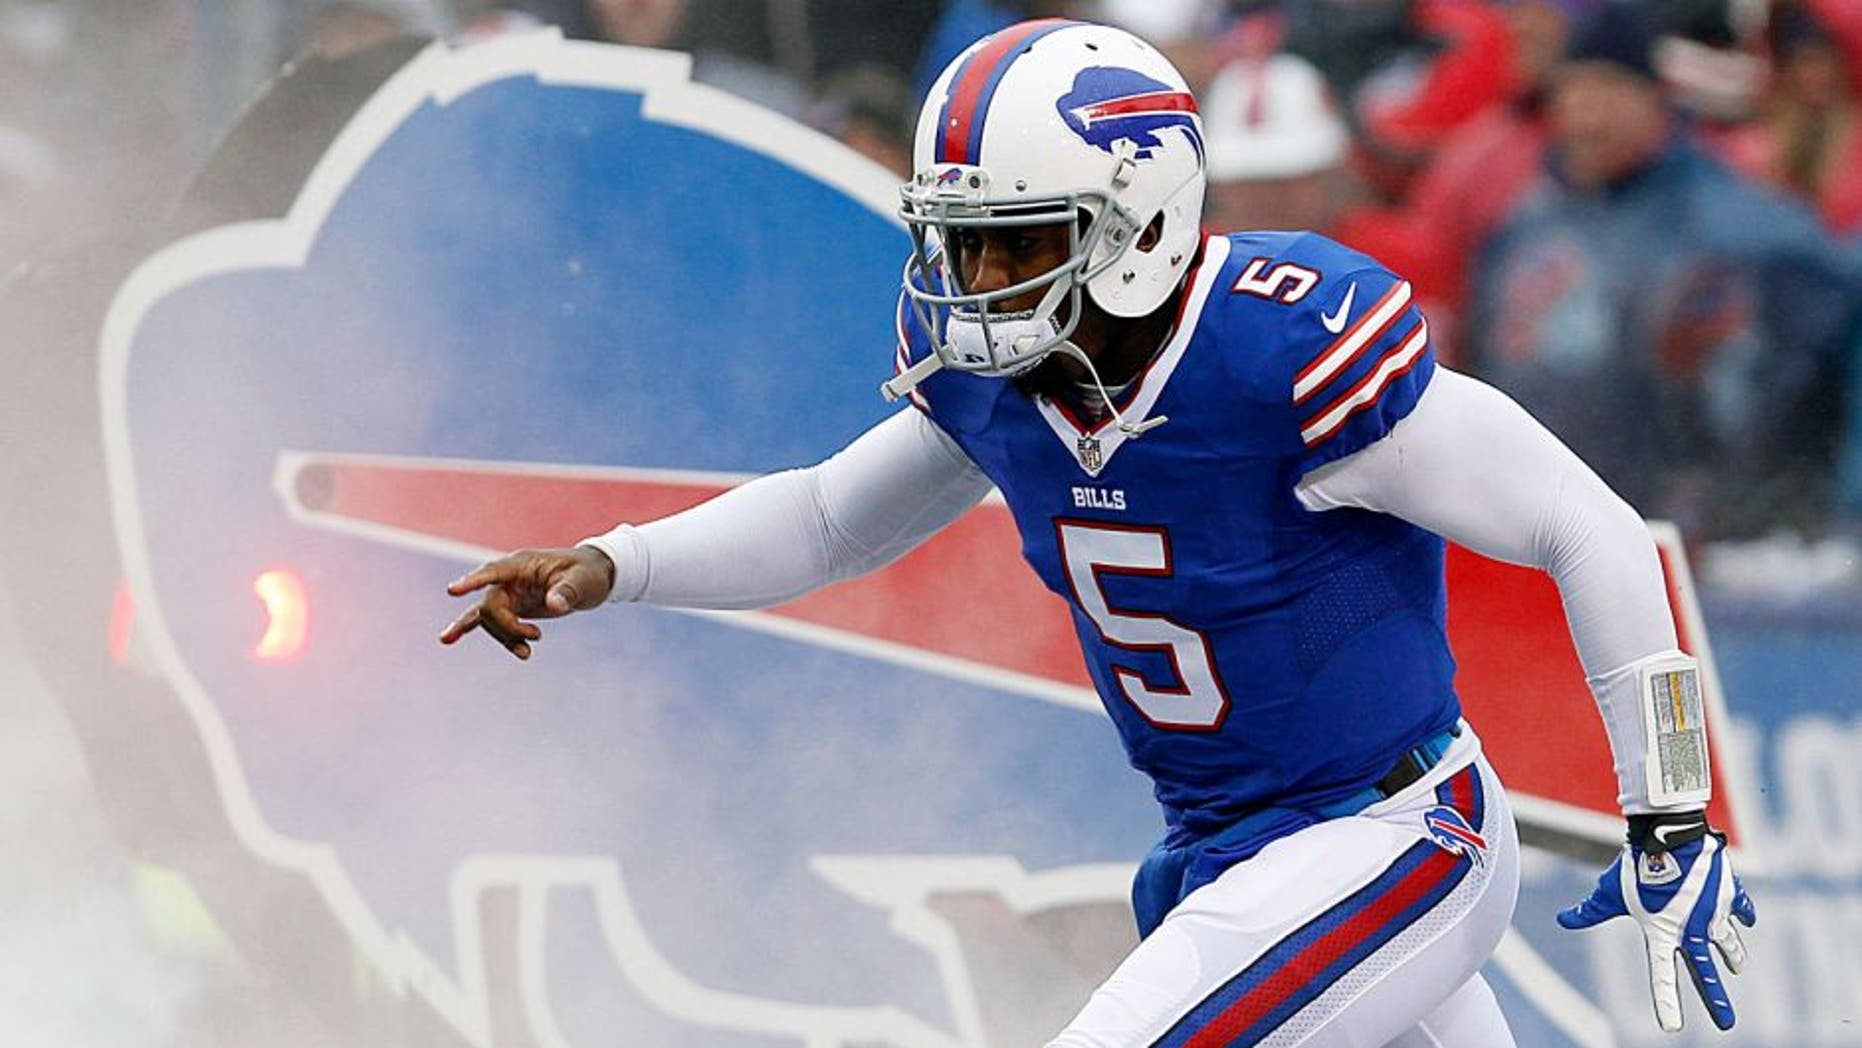 Dec 27, 2015; Orchard Park, NY, USA; Buffalo Bills quarterback Tyrod Taylor (5) before a game against the Dallas Cowboys at Ralph Wilson Stadium. Mandatory Credit: Timothy T. Ludwig-USA TODAY Sports